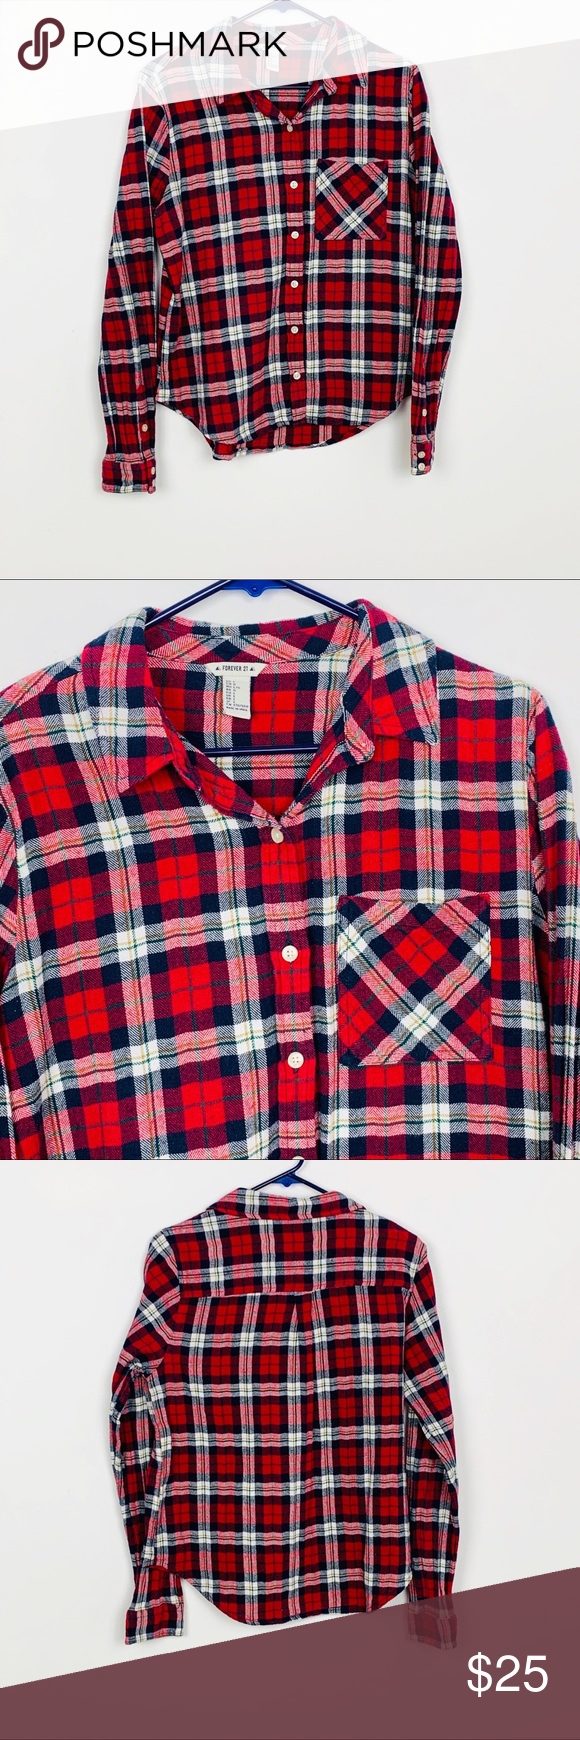 e4be6c391f2 Forever 21 Red Plaid Flannel Shirt Forever 21 Red